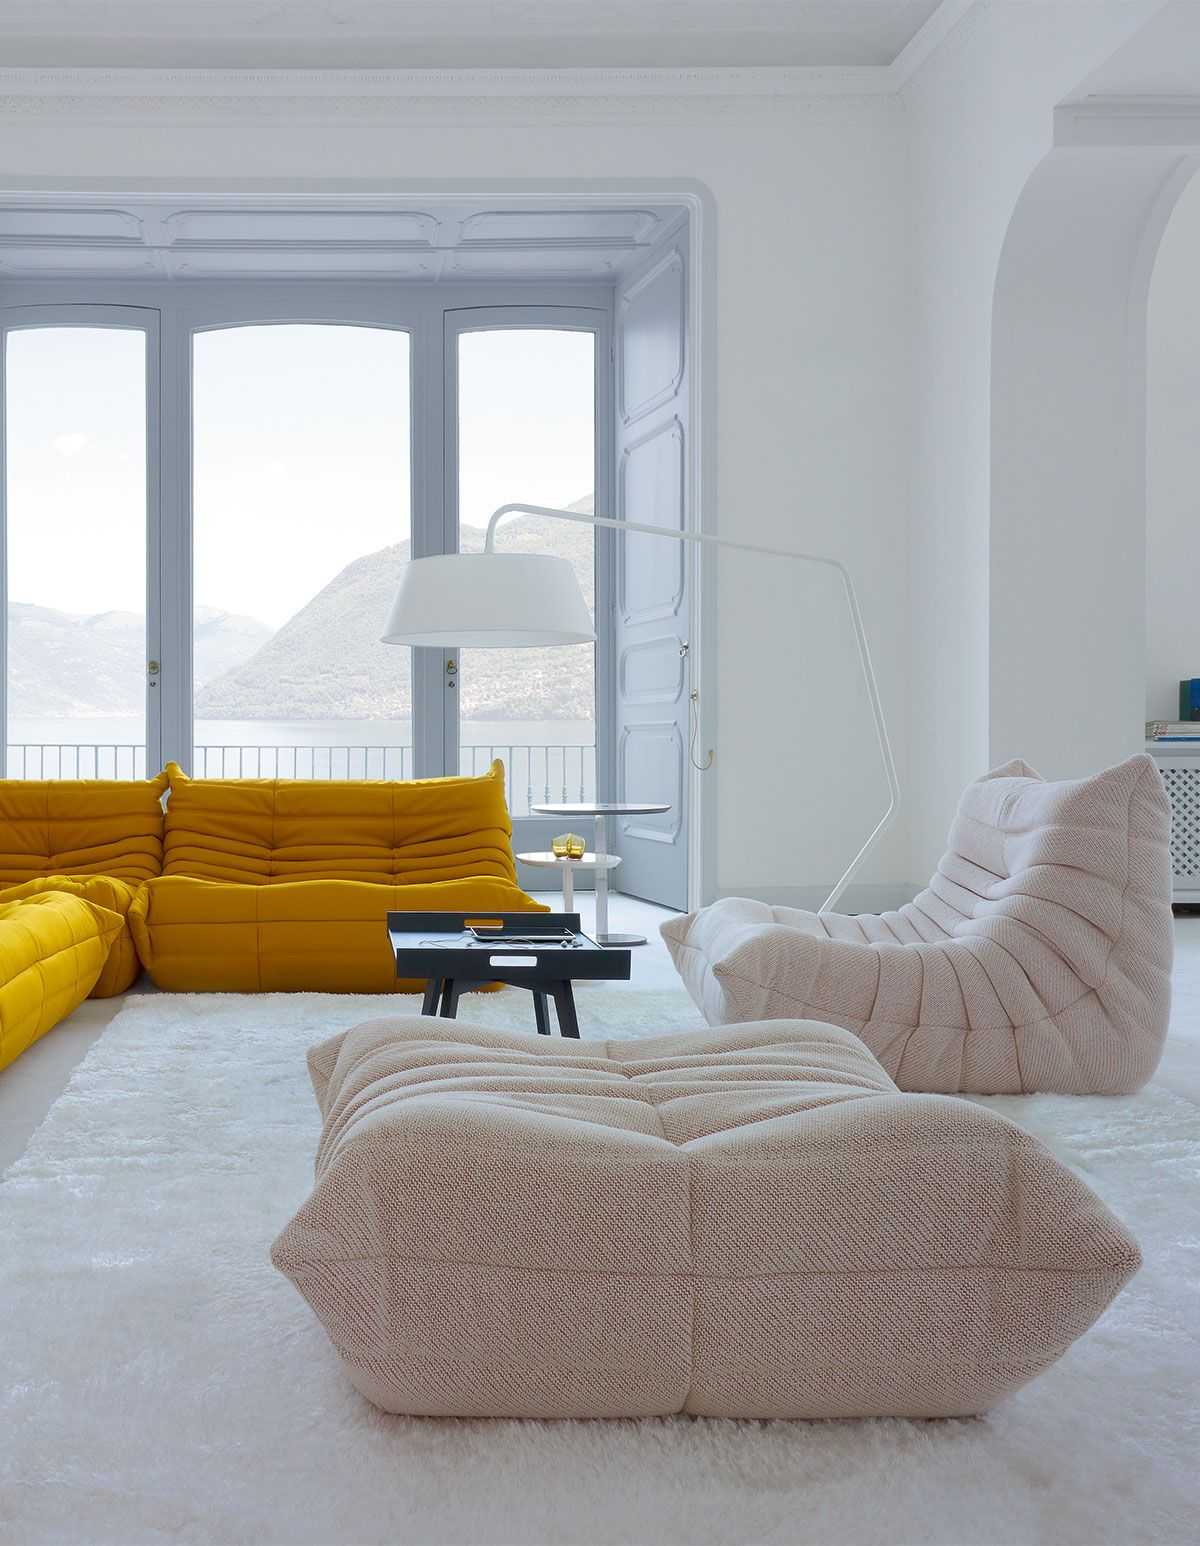 Togo Collection Designed By Michel Ducaroy For Ligne Roset